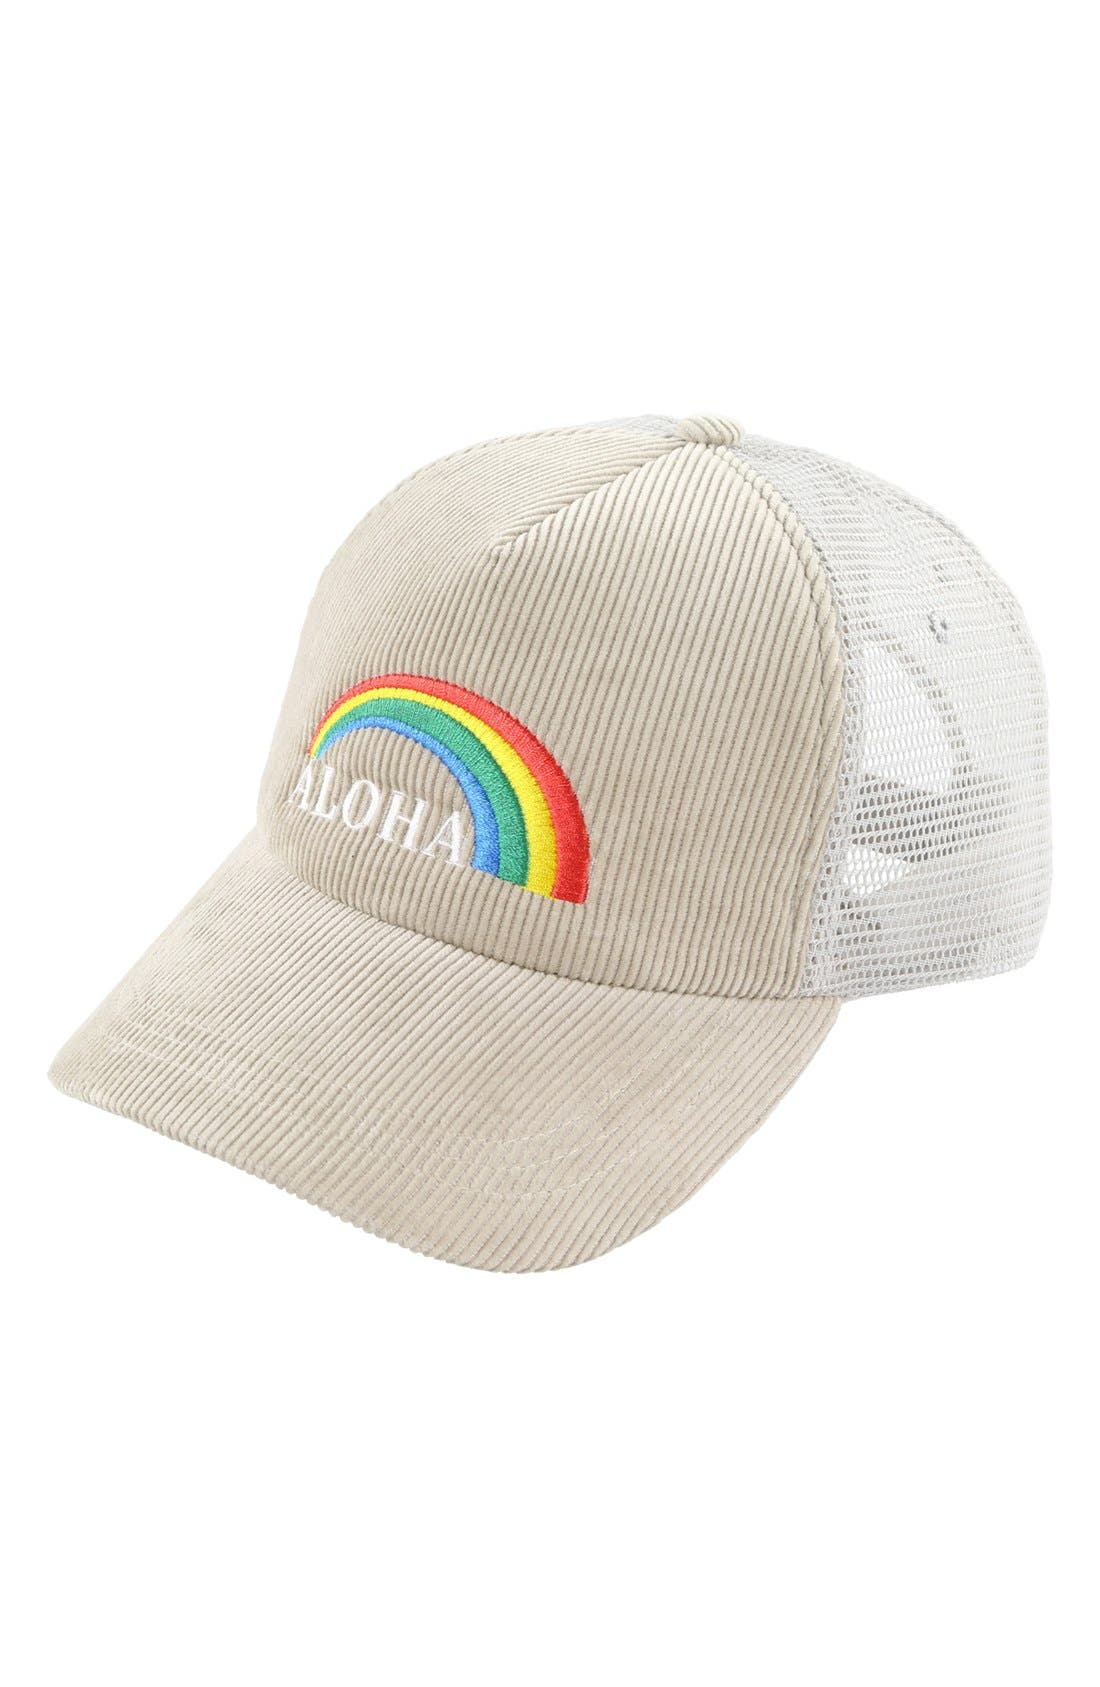 Alternate Image 1 Selected - O'Neill 'Aloha' Corduroy Trucker Hat